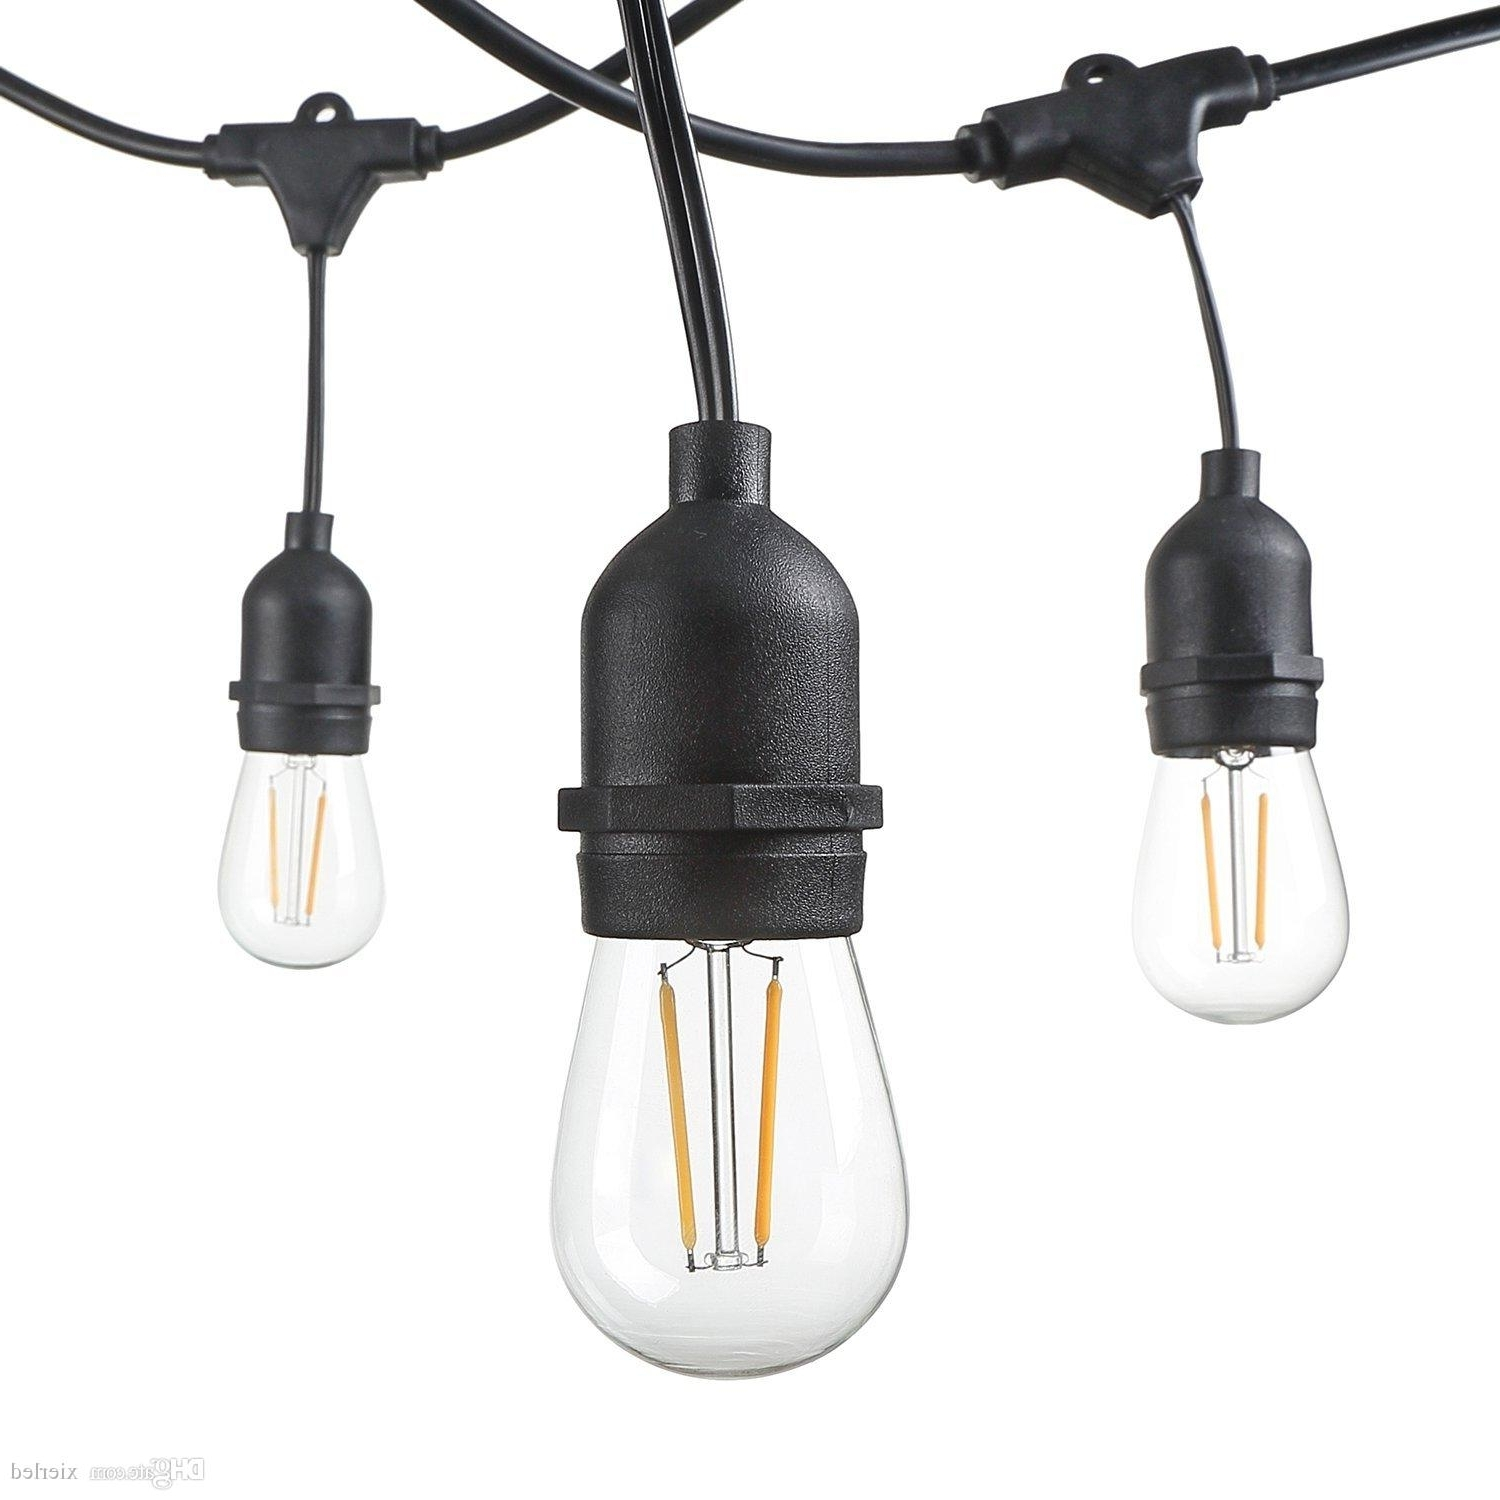 Newest 48 Foot Weatherproof Outdoor String Lights S14 Led Filament Bulbs Intended For Waterproof Outdoor Lanterns (View 7 of 20)